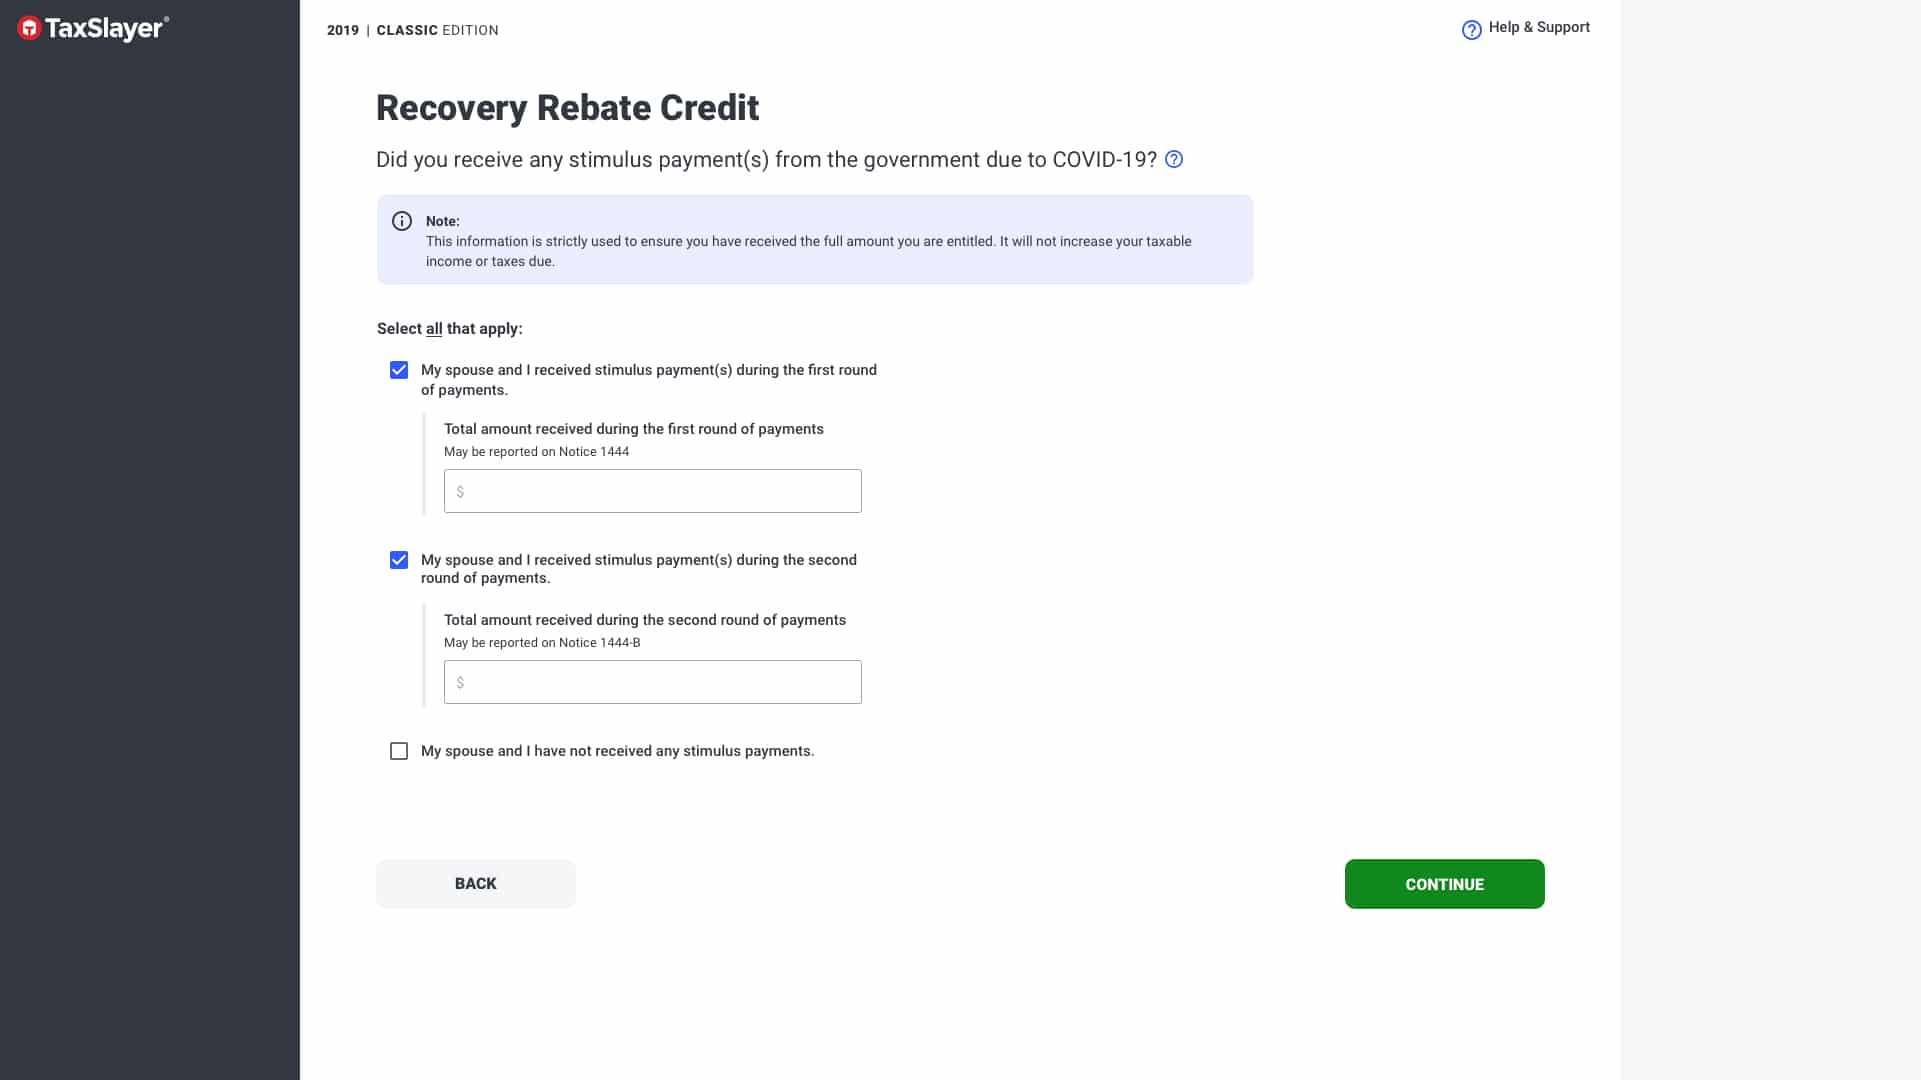 TaxSlayer Recovery Rebate Credit